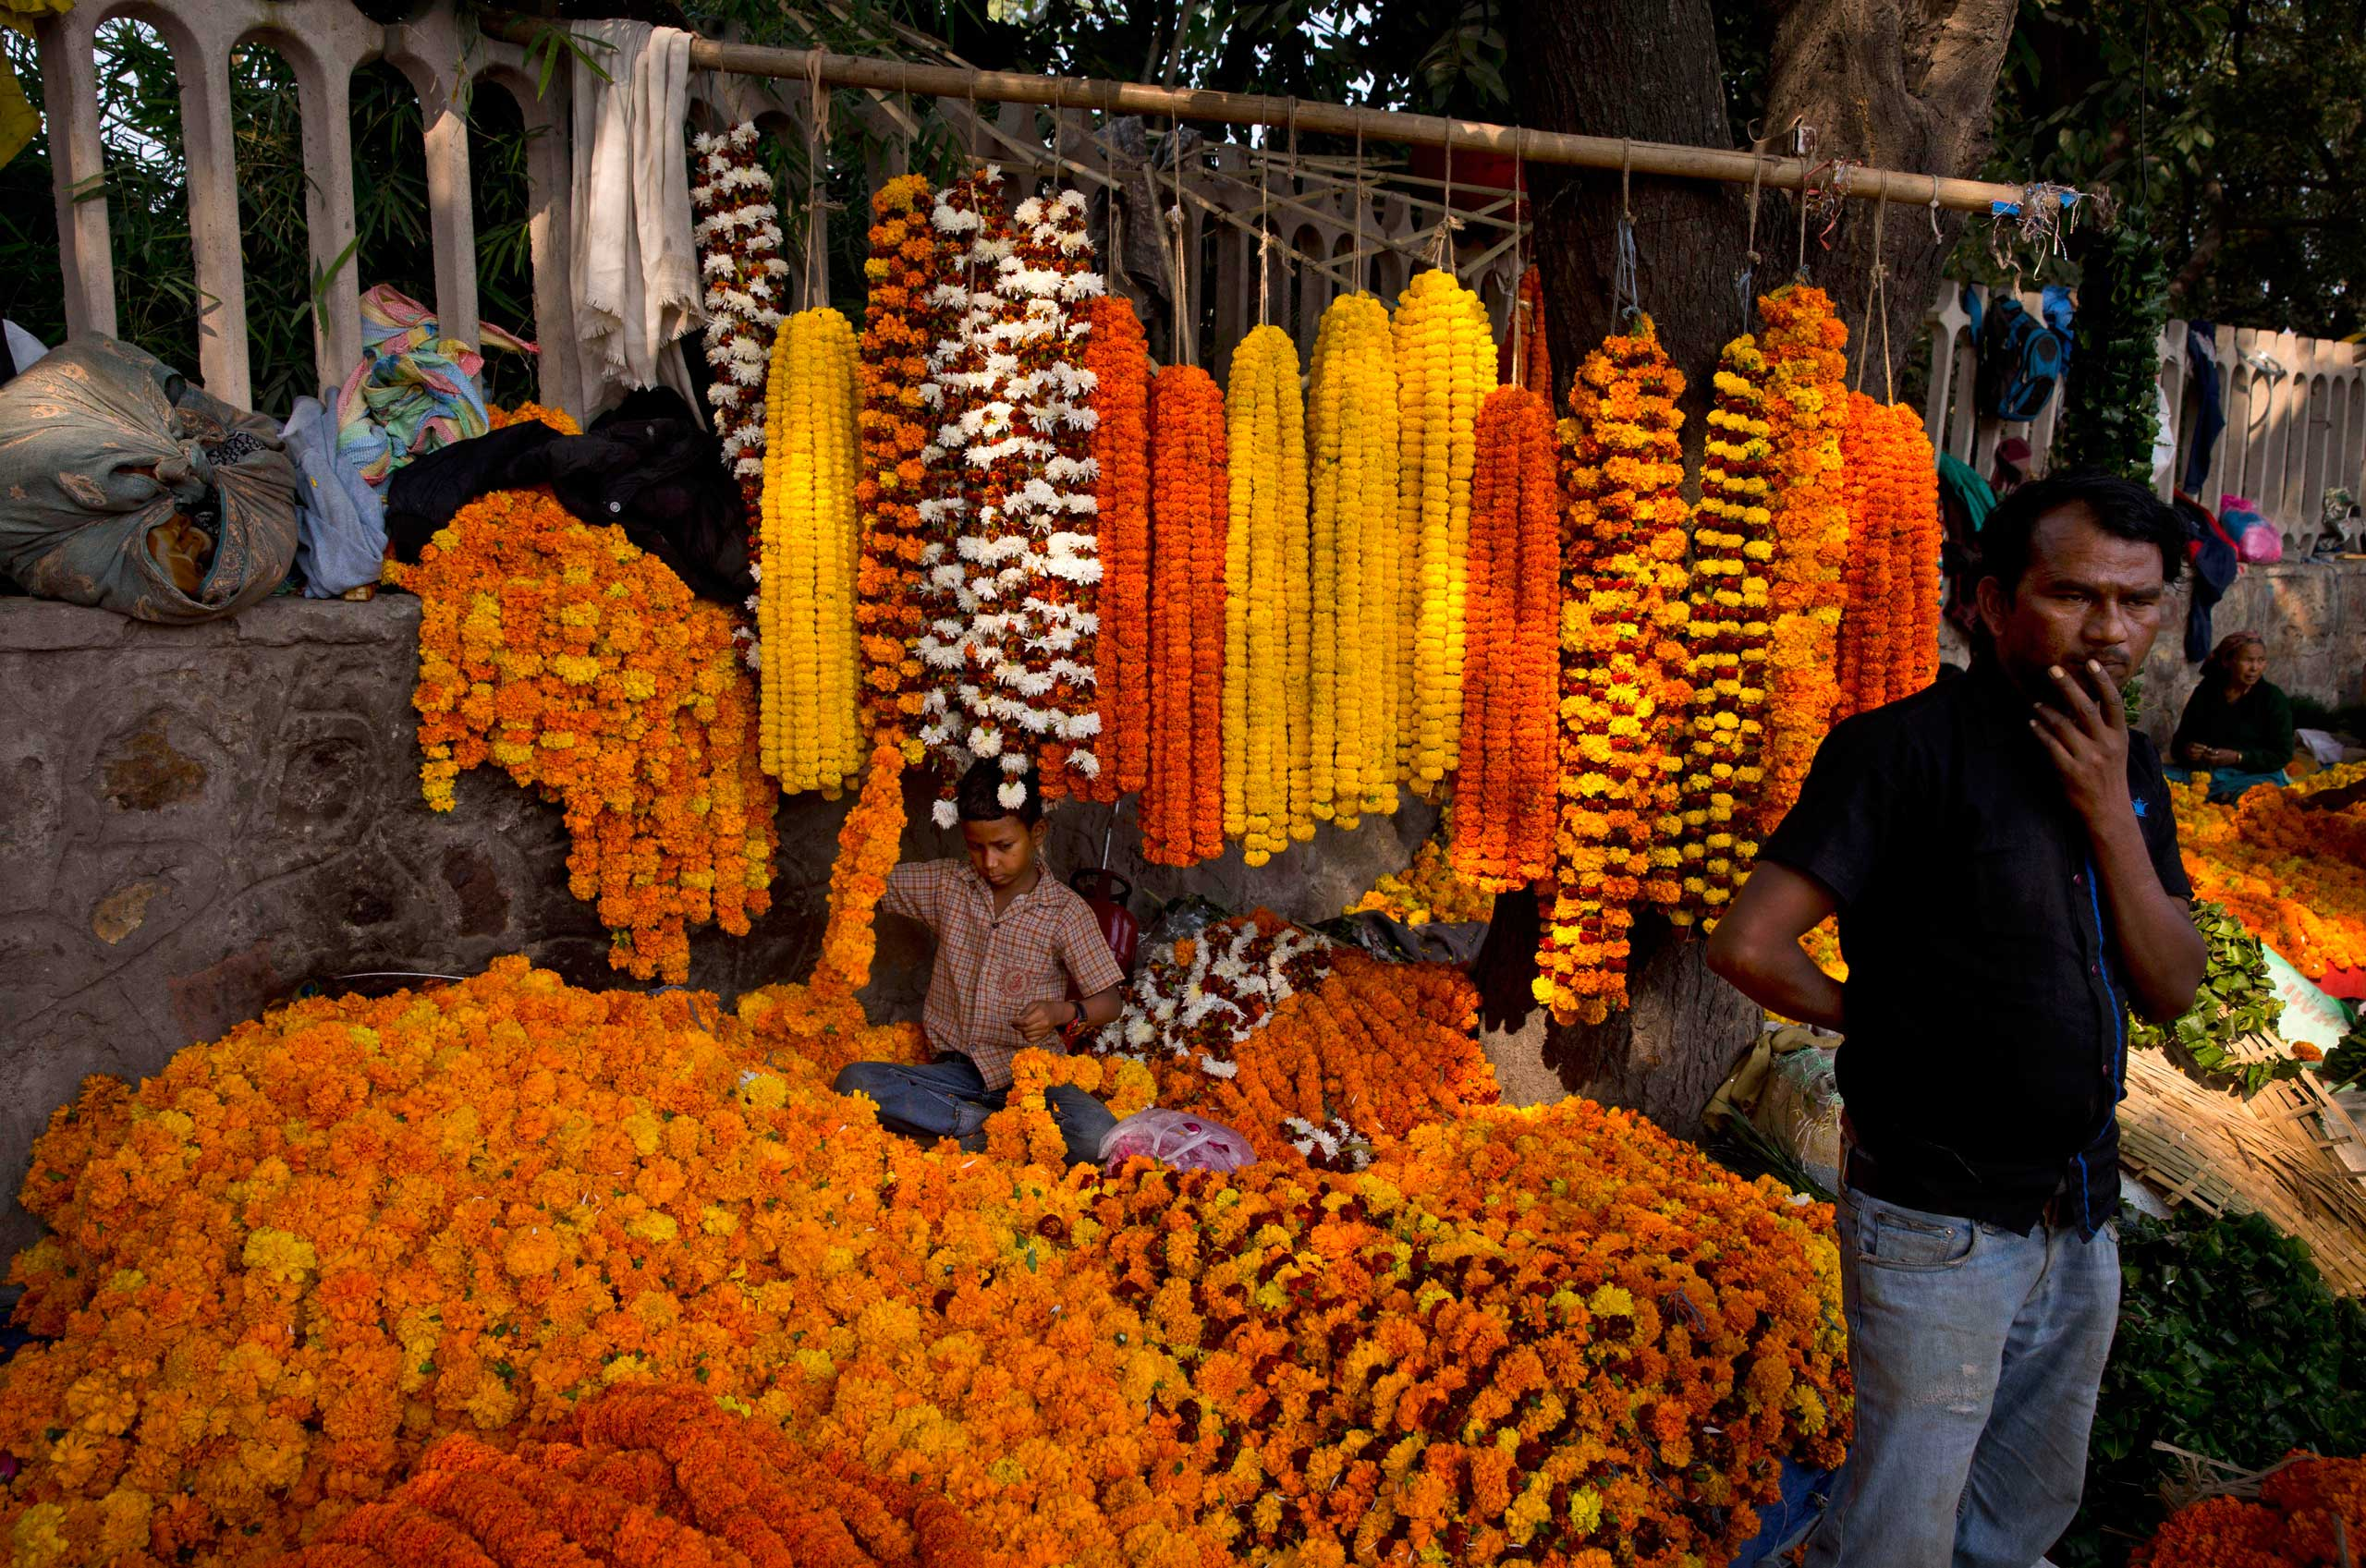 A boy prepares garlands of marigold at a makeshift flower market as people drop by to purchase flowers and decorate their homes on the occasion of Diwali festival, in New Delhi, on Nov. 11, 2015.